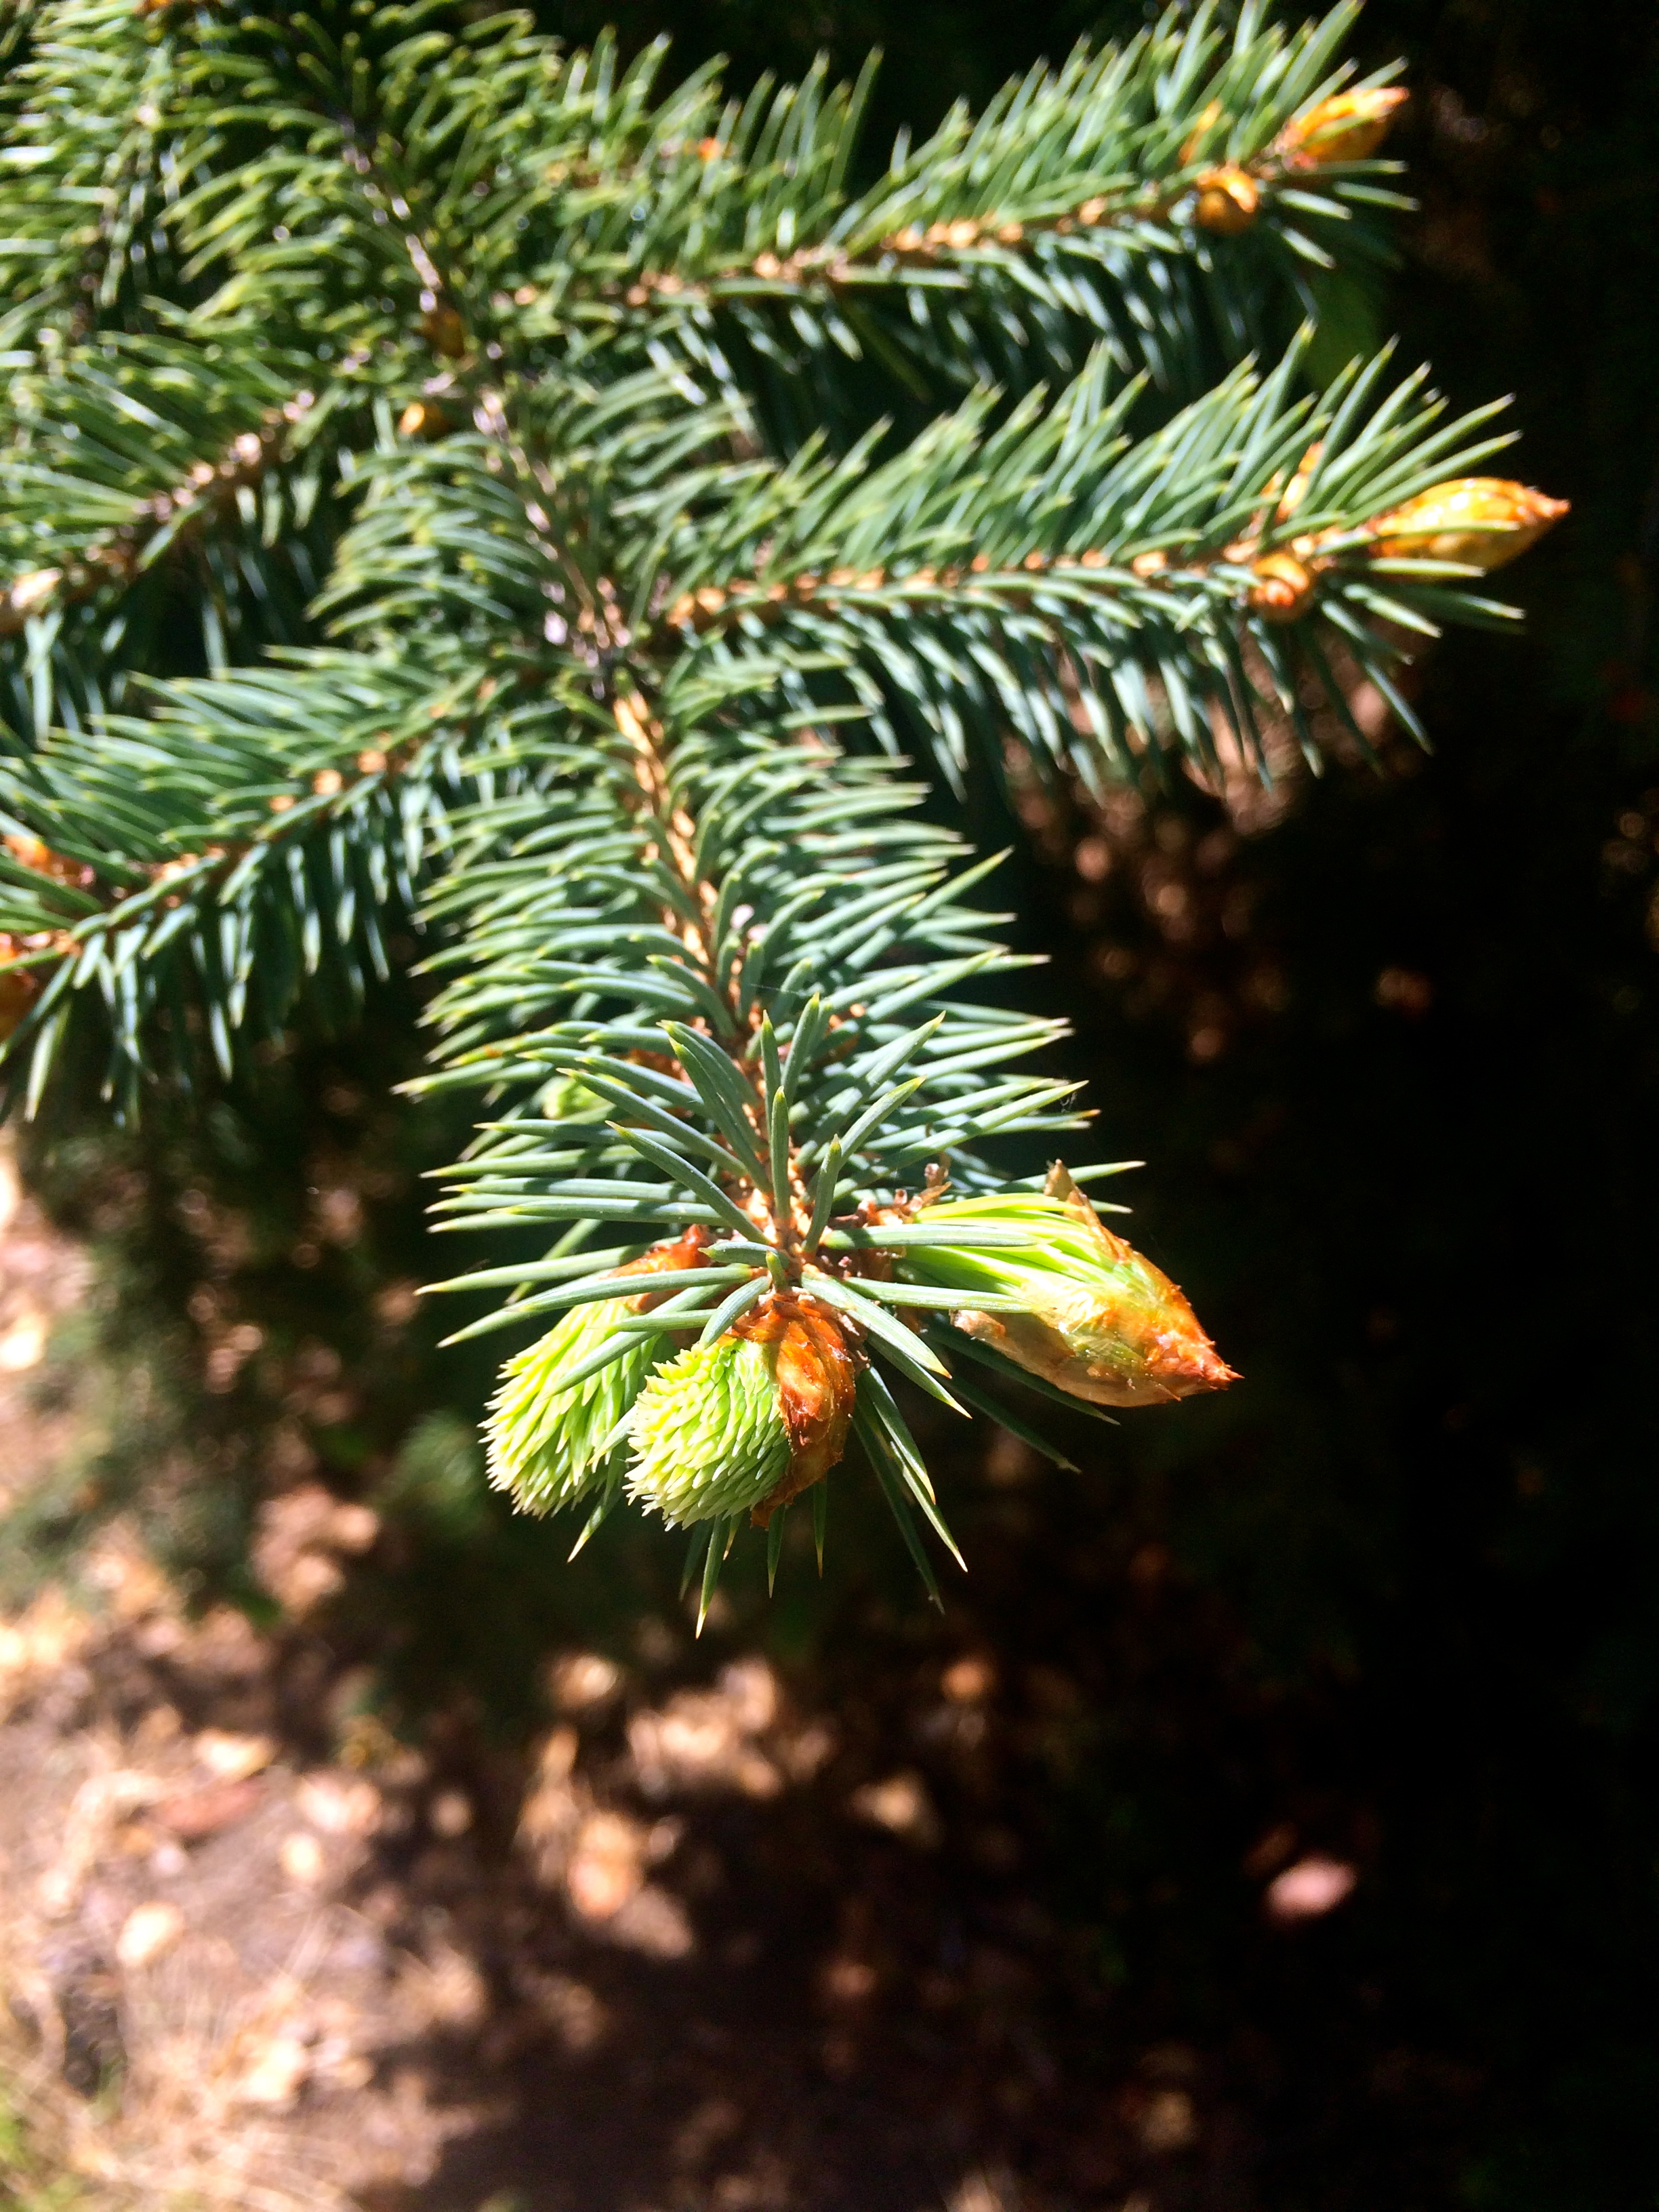 Spruce tips pushing through their brown papery casings.